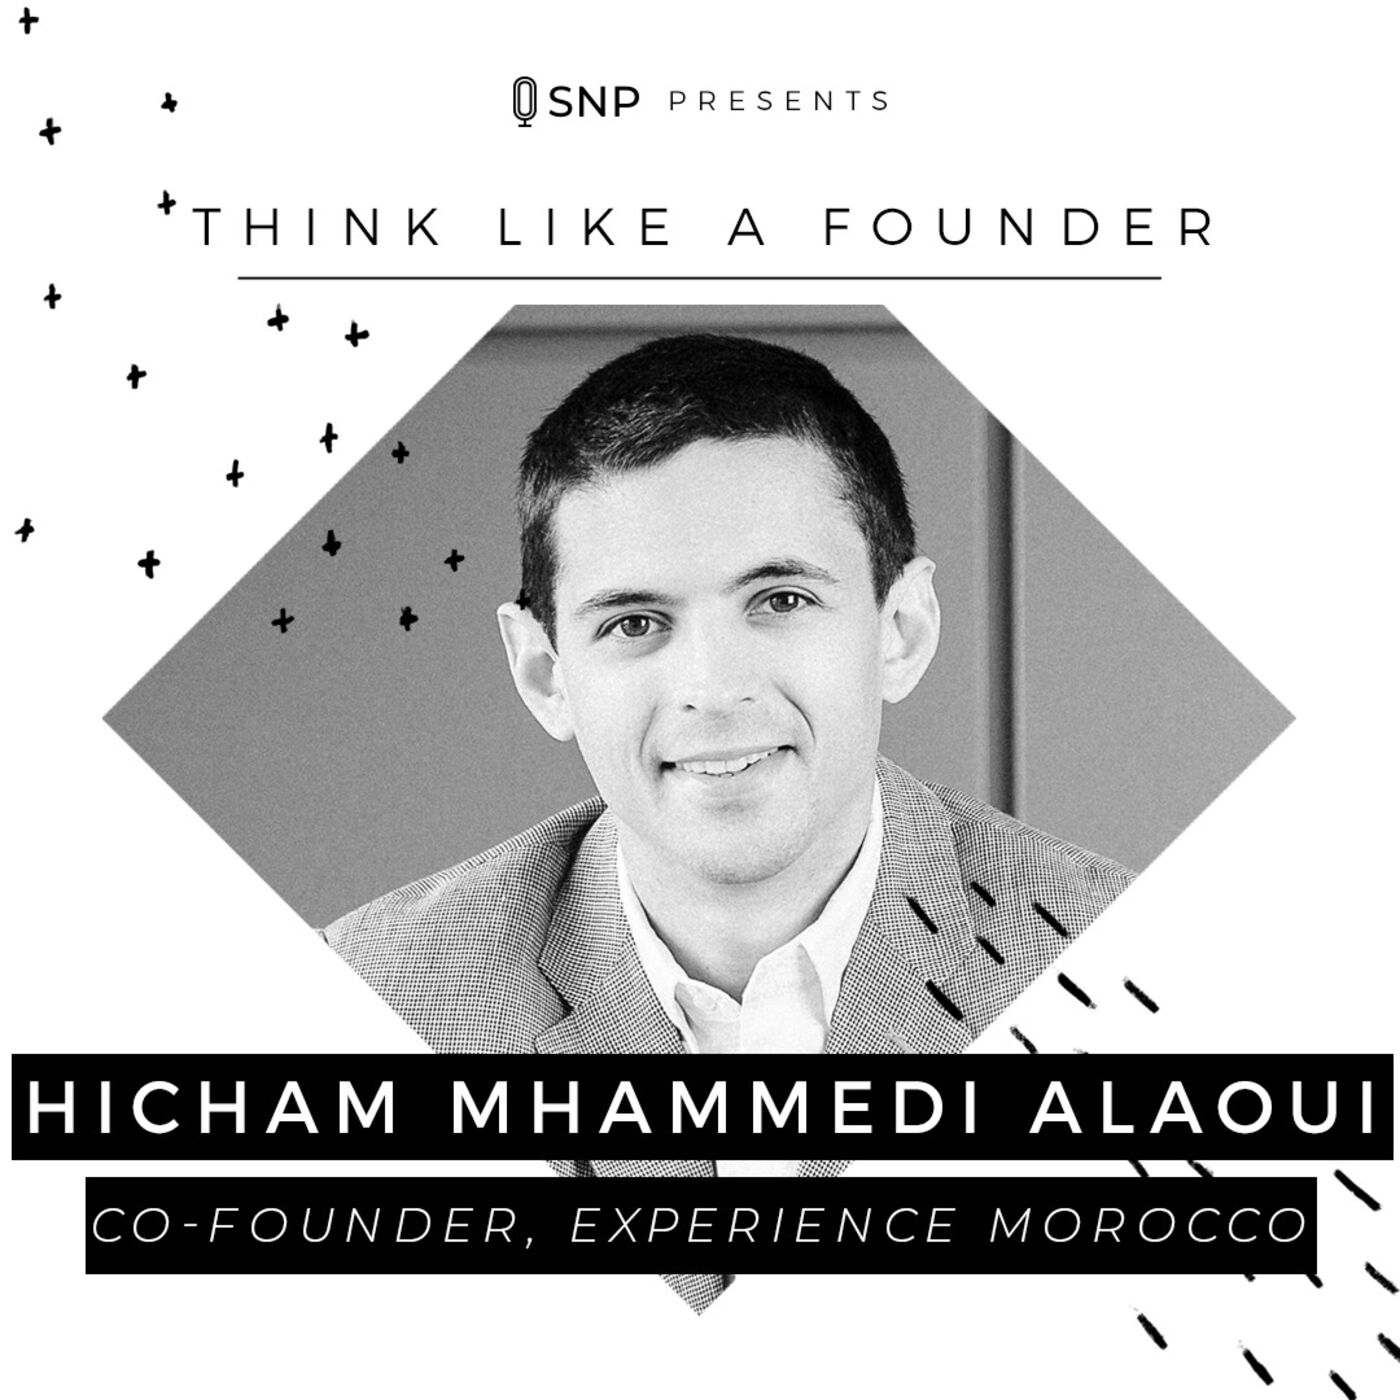 009: Hicham Alaoui - Co-Founder of Experience Morocco